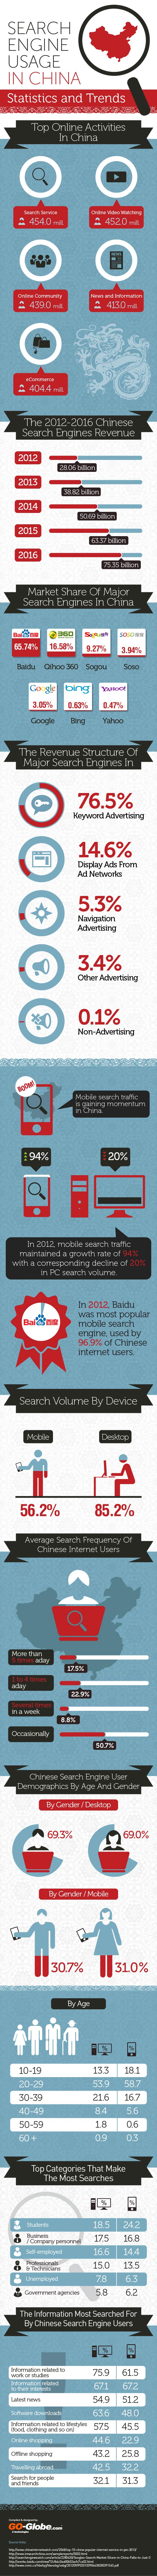 Search Engine Usage in China – Statistics and Trends